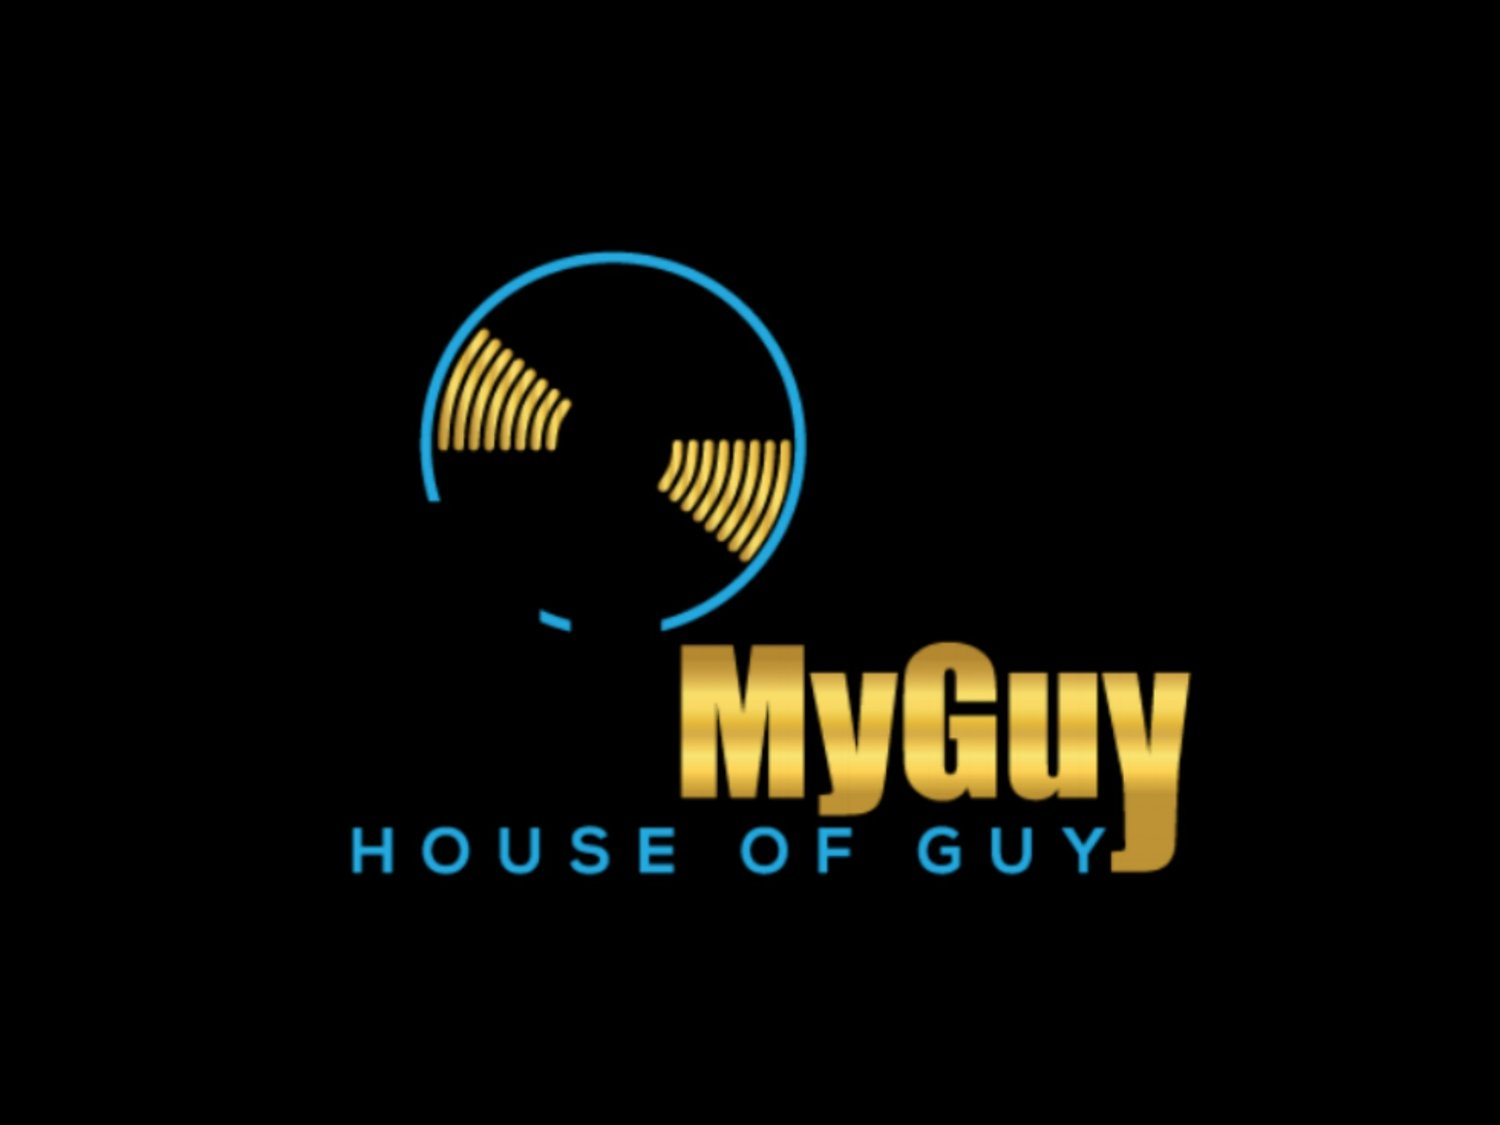 HOUSE OF GUY